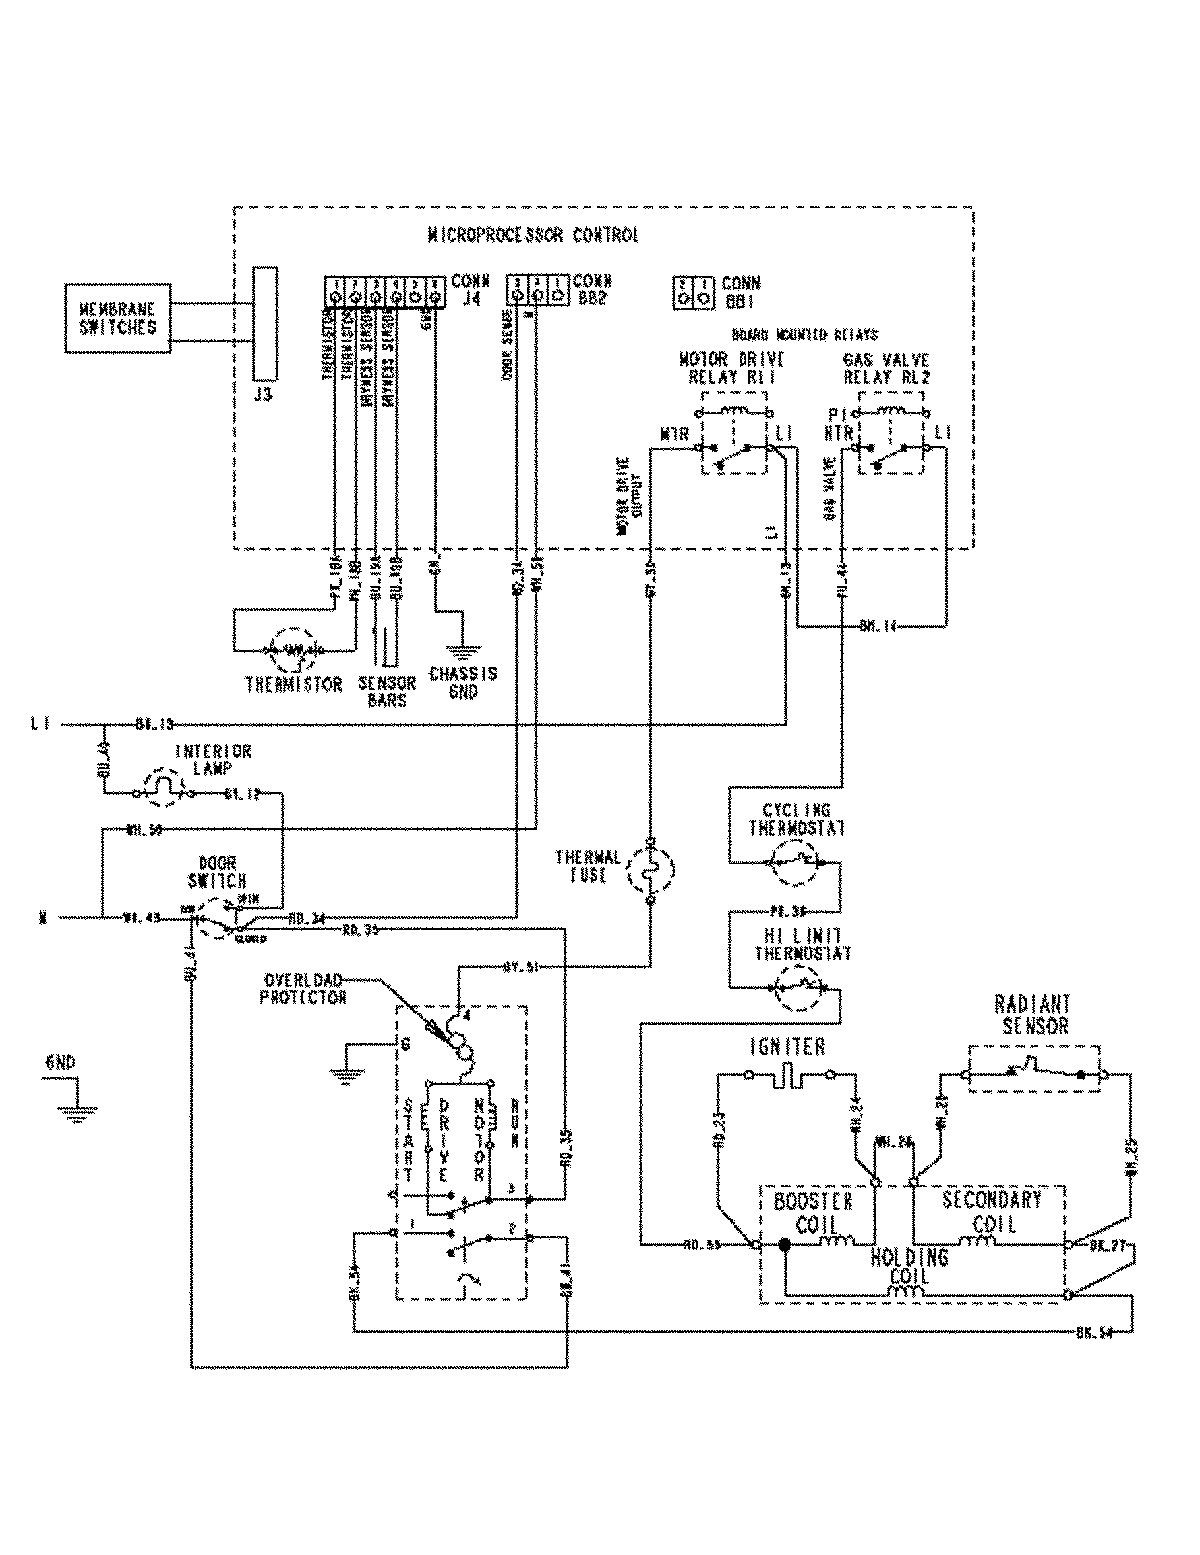 WIRING INFORMATION Diagram & Parts List for Model